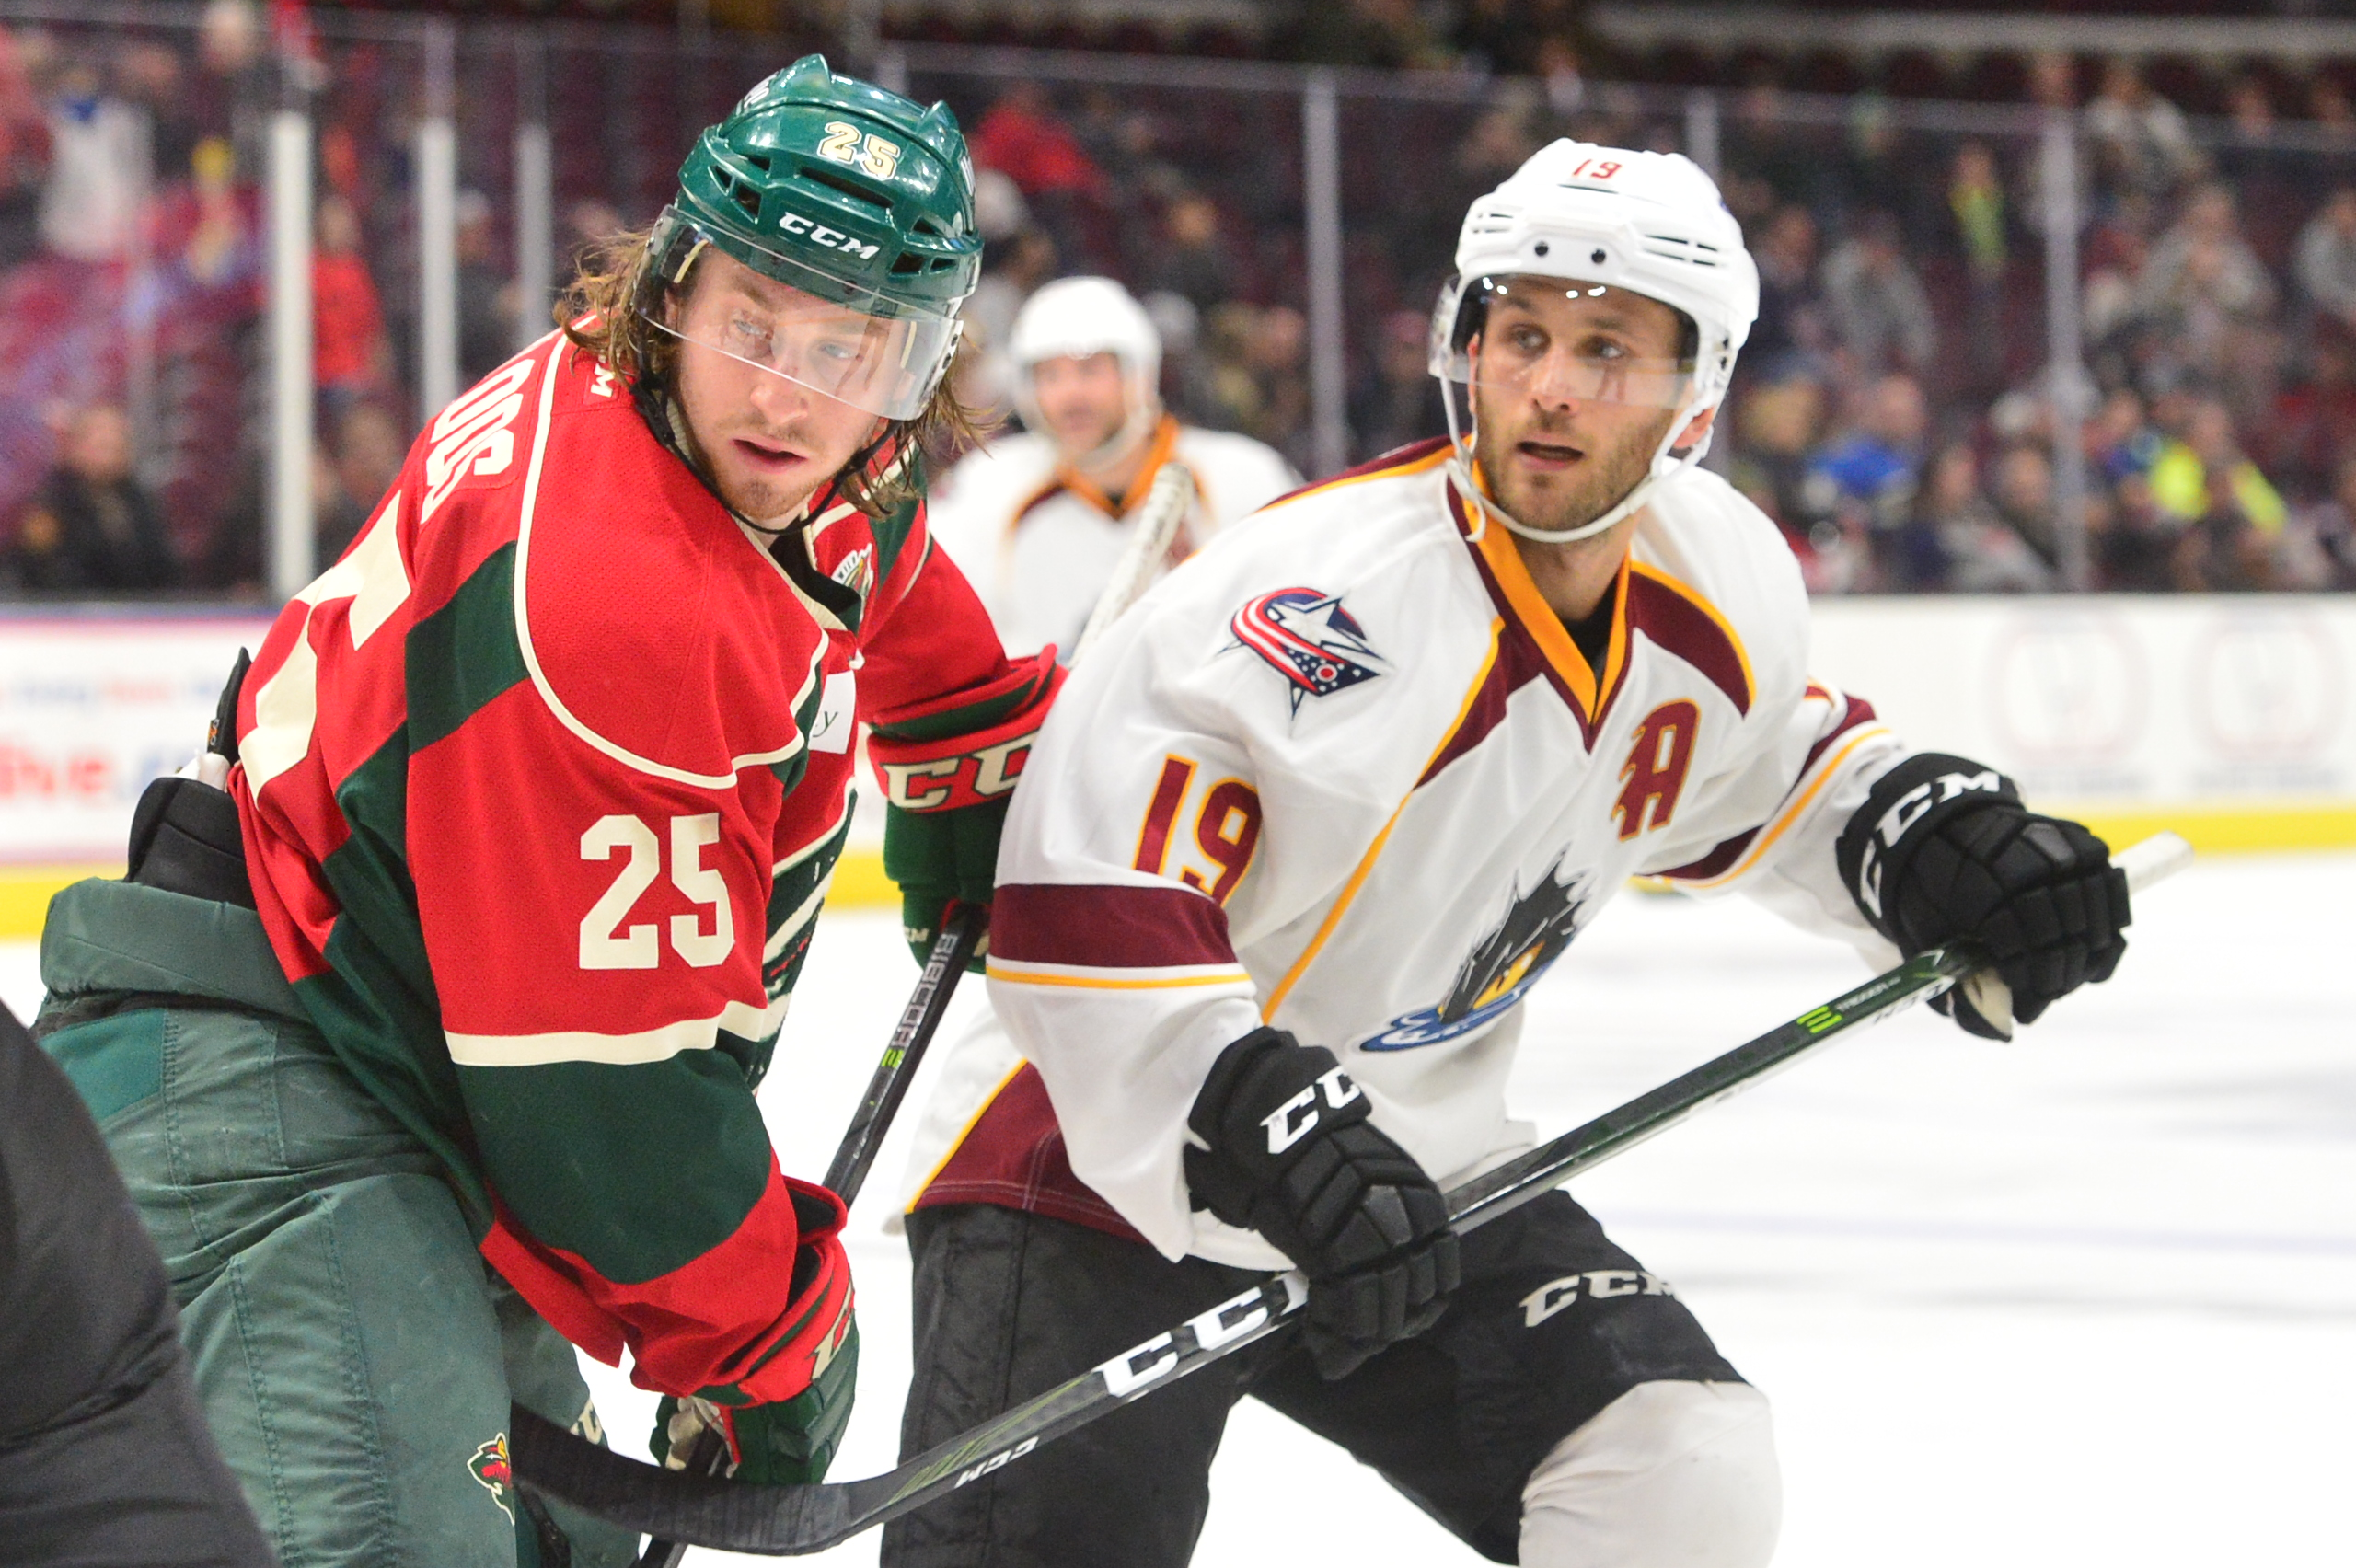 AHL: Monsters Blanked By Iowa Wild, 3-0